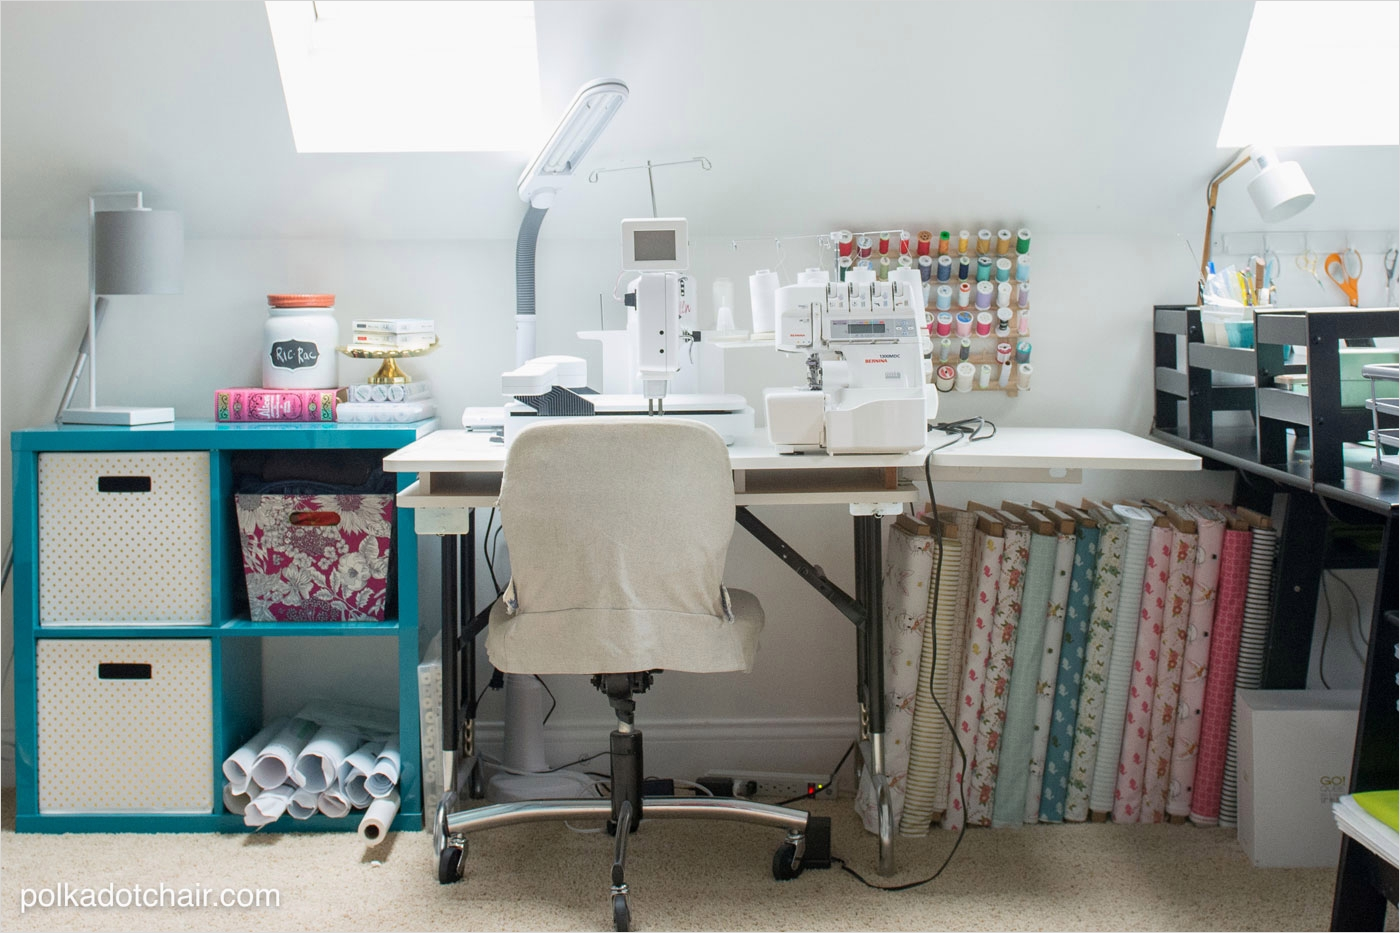 40 Creative Sewing Room Storage Ideas 53 Room Makeover Reveal Sewing Room Ideas the Polka Dot Chair 9